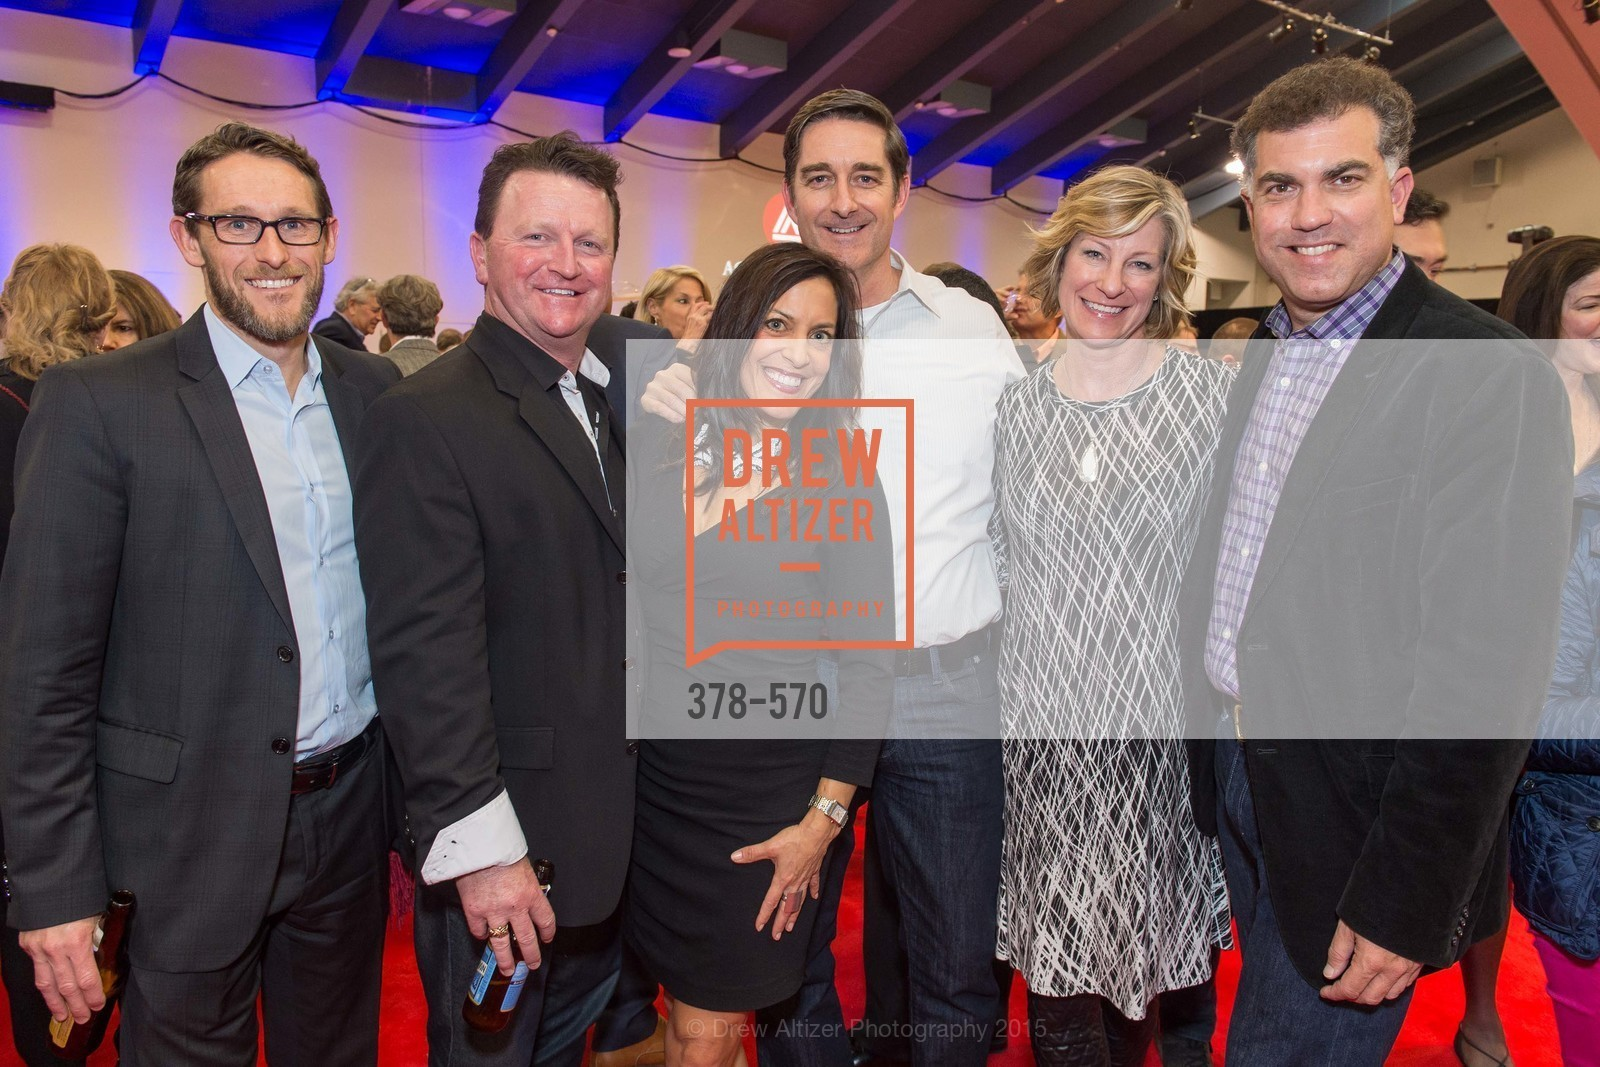 Julian Marsh, Gordon Stirling, Susan Siep, Brian Perouti, Jennifer Tooney, Kevin Ponti, Academy of Art University Reception at the 58th Annual SF International Auto Show, Moscone Convention Center. 747 Howard St, November 20th, 2015,Drew Altizer, Drew Altizer Photography, full-service agency, private events, San Francisco photographer, photographer california